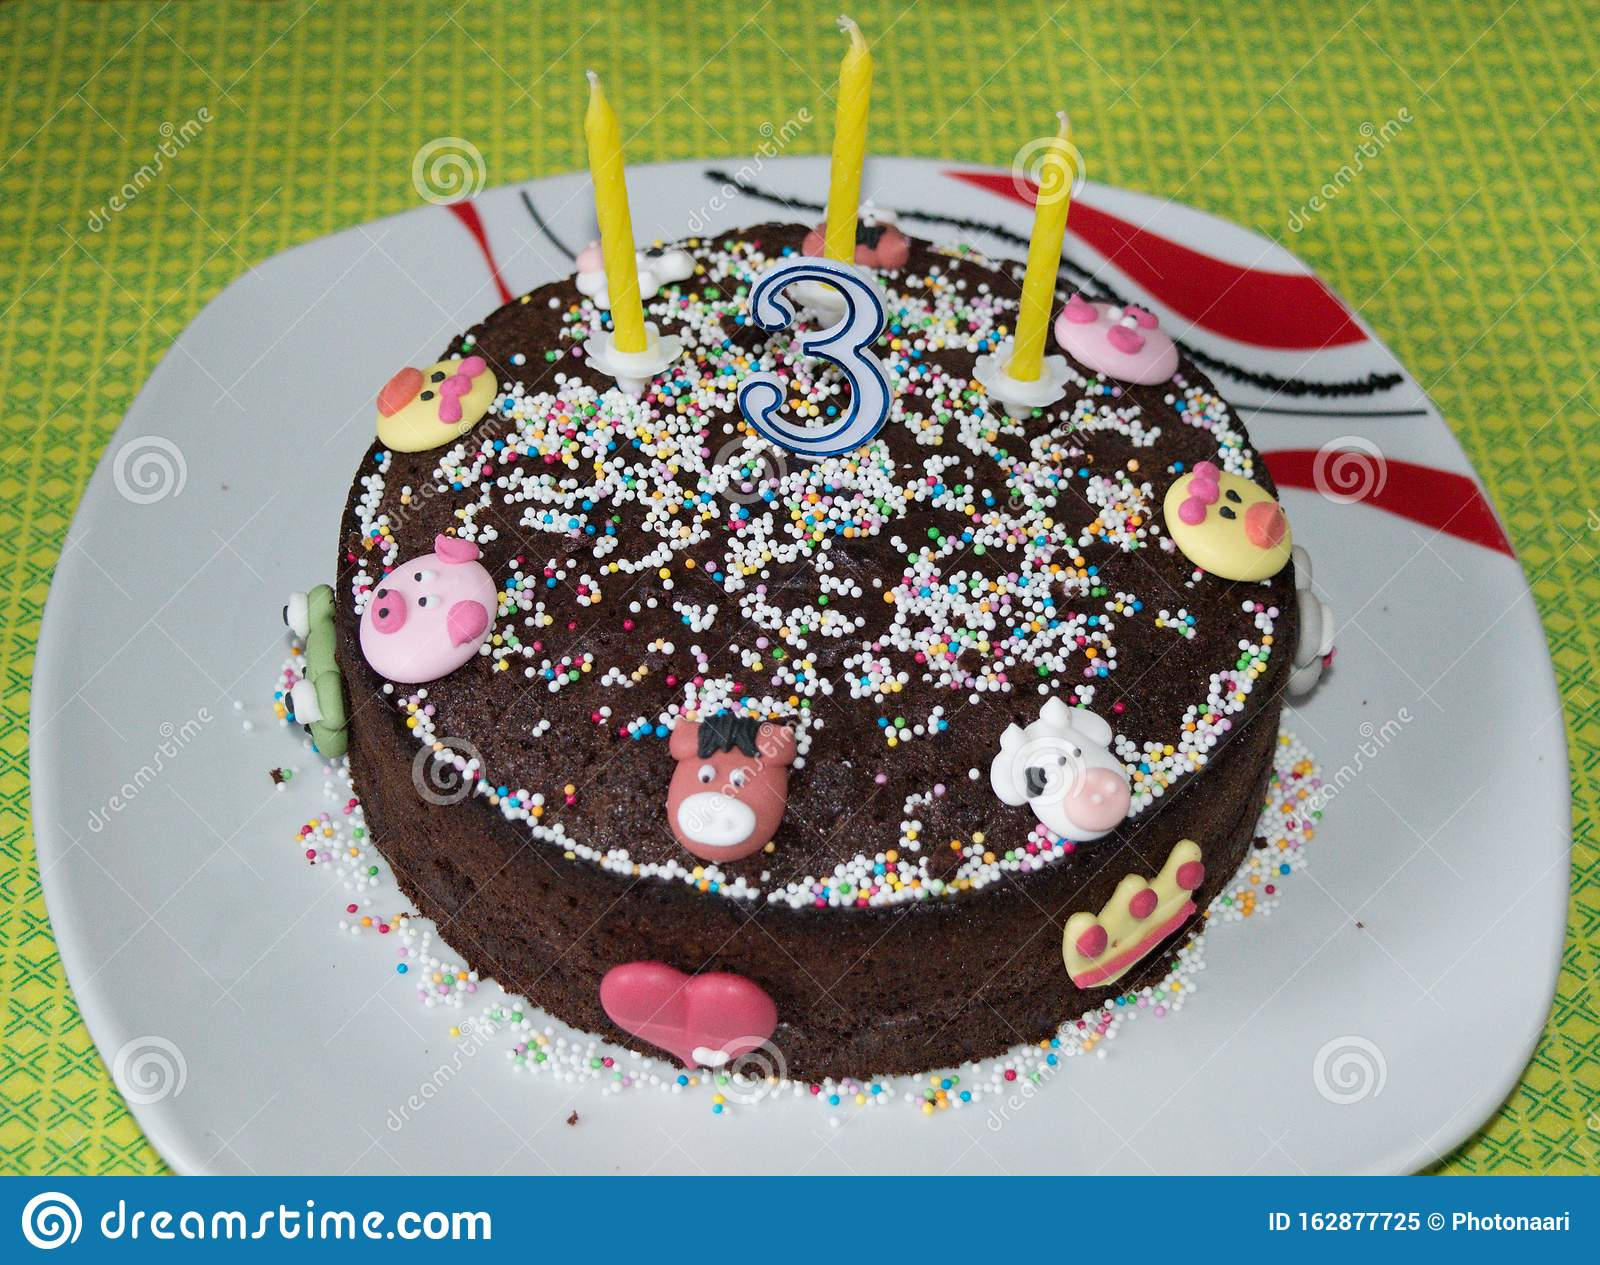 Astounding 3 Year Old Birthday Cake Stock Image Image Of Concept 162877725 Funny Birthday Cards Online Overcheapnameinfo